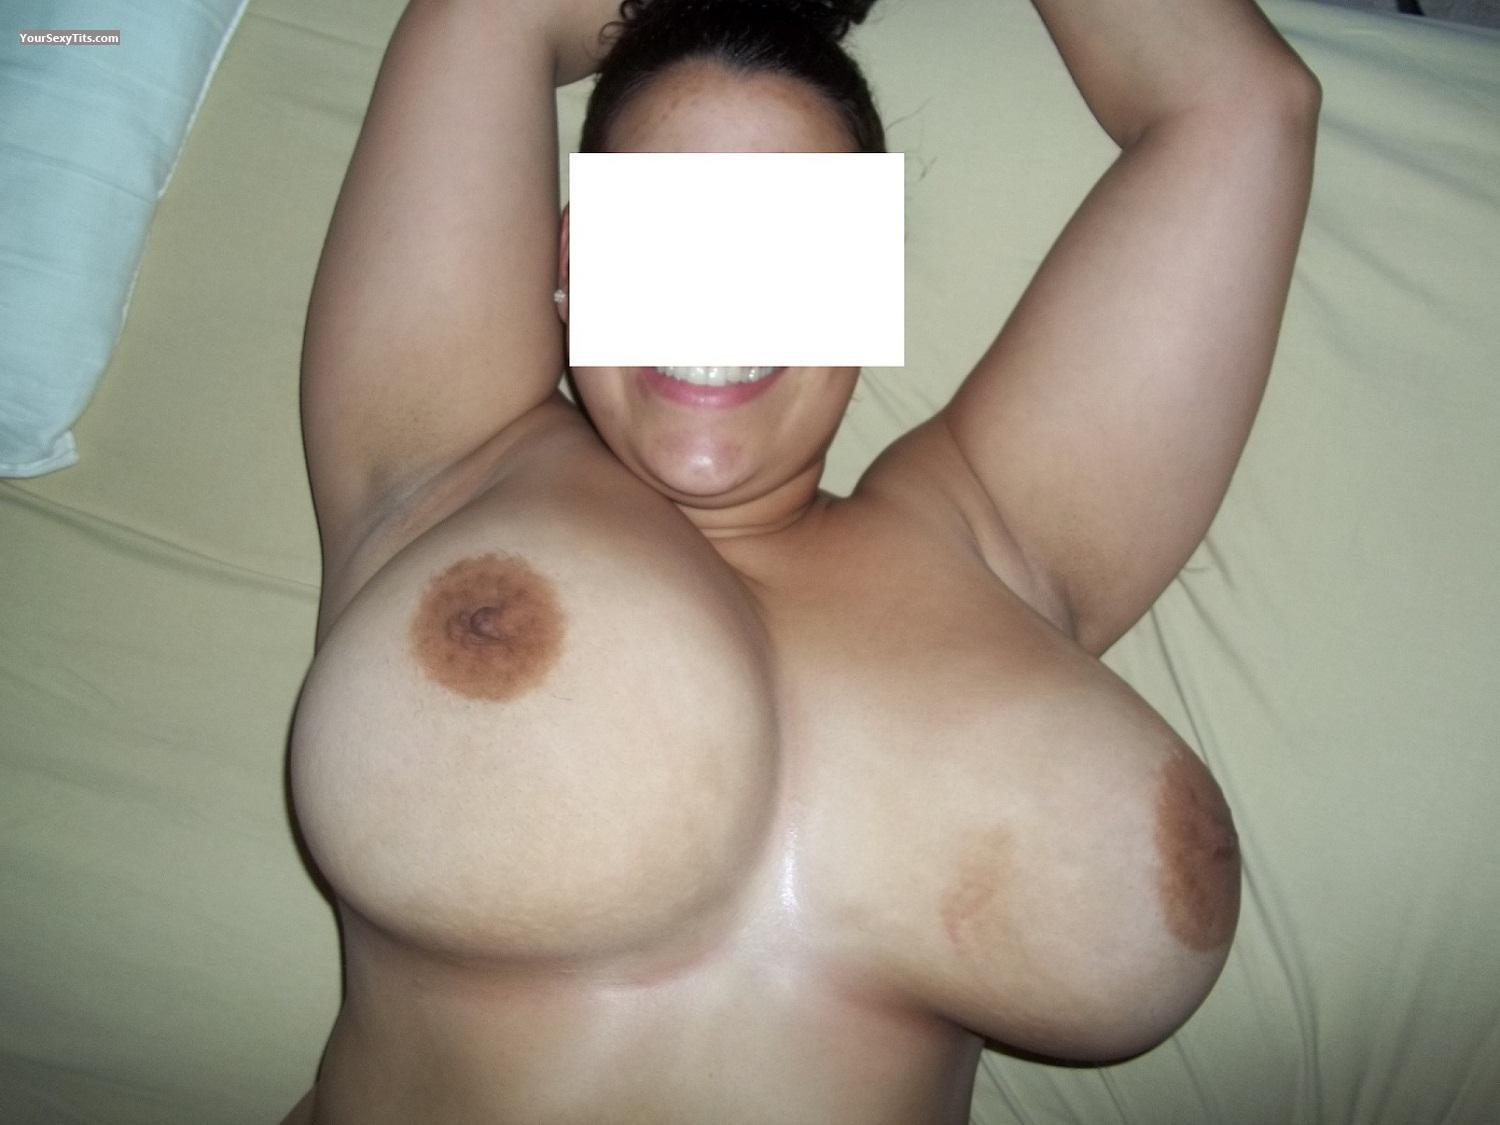 Tit Flash: Very Big Tits - Lily36ddd from United States